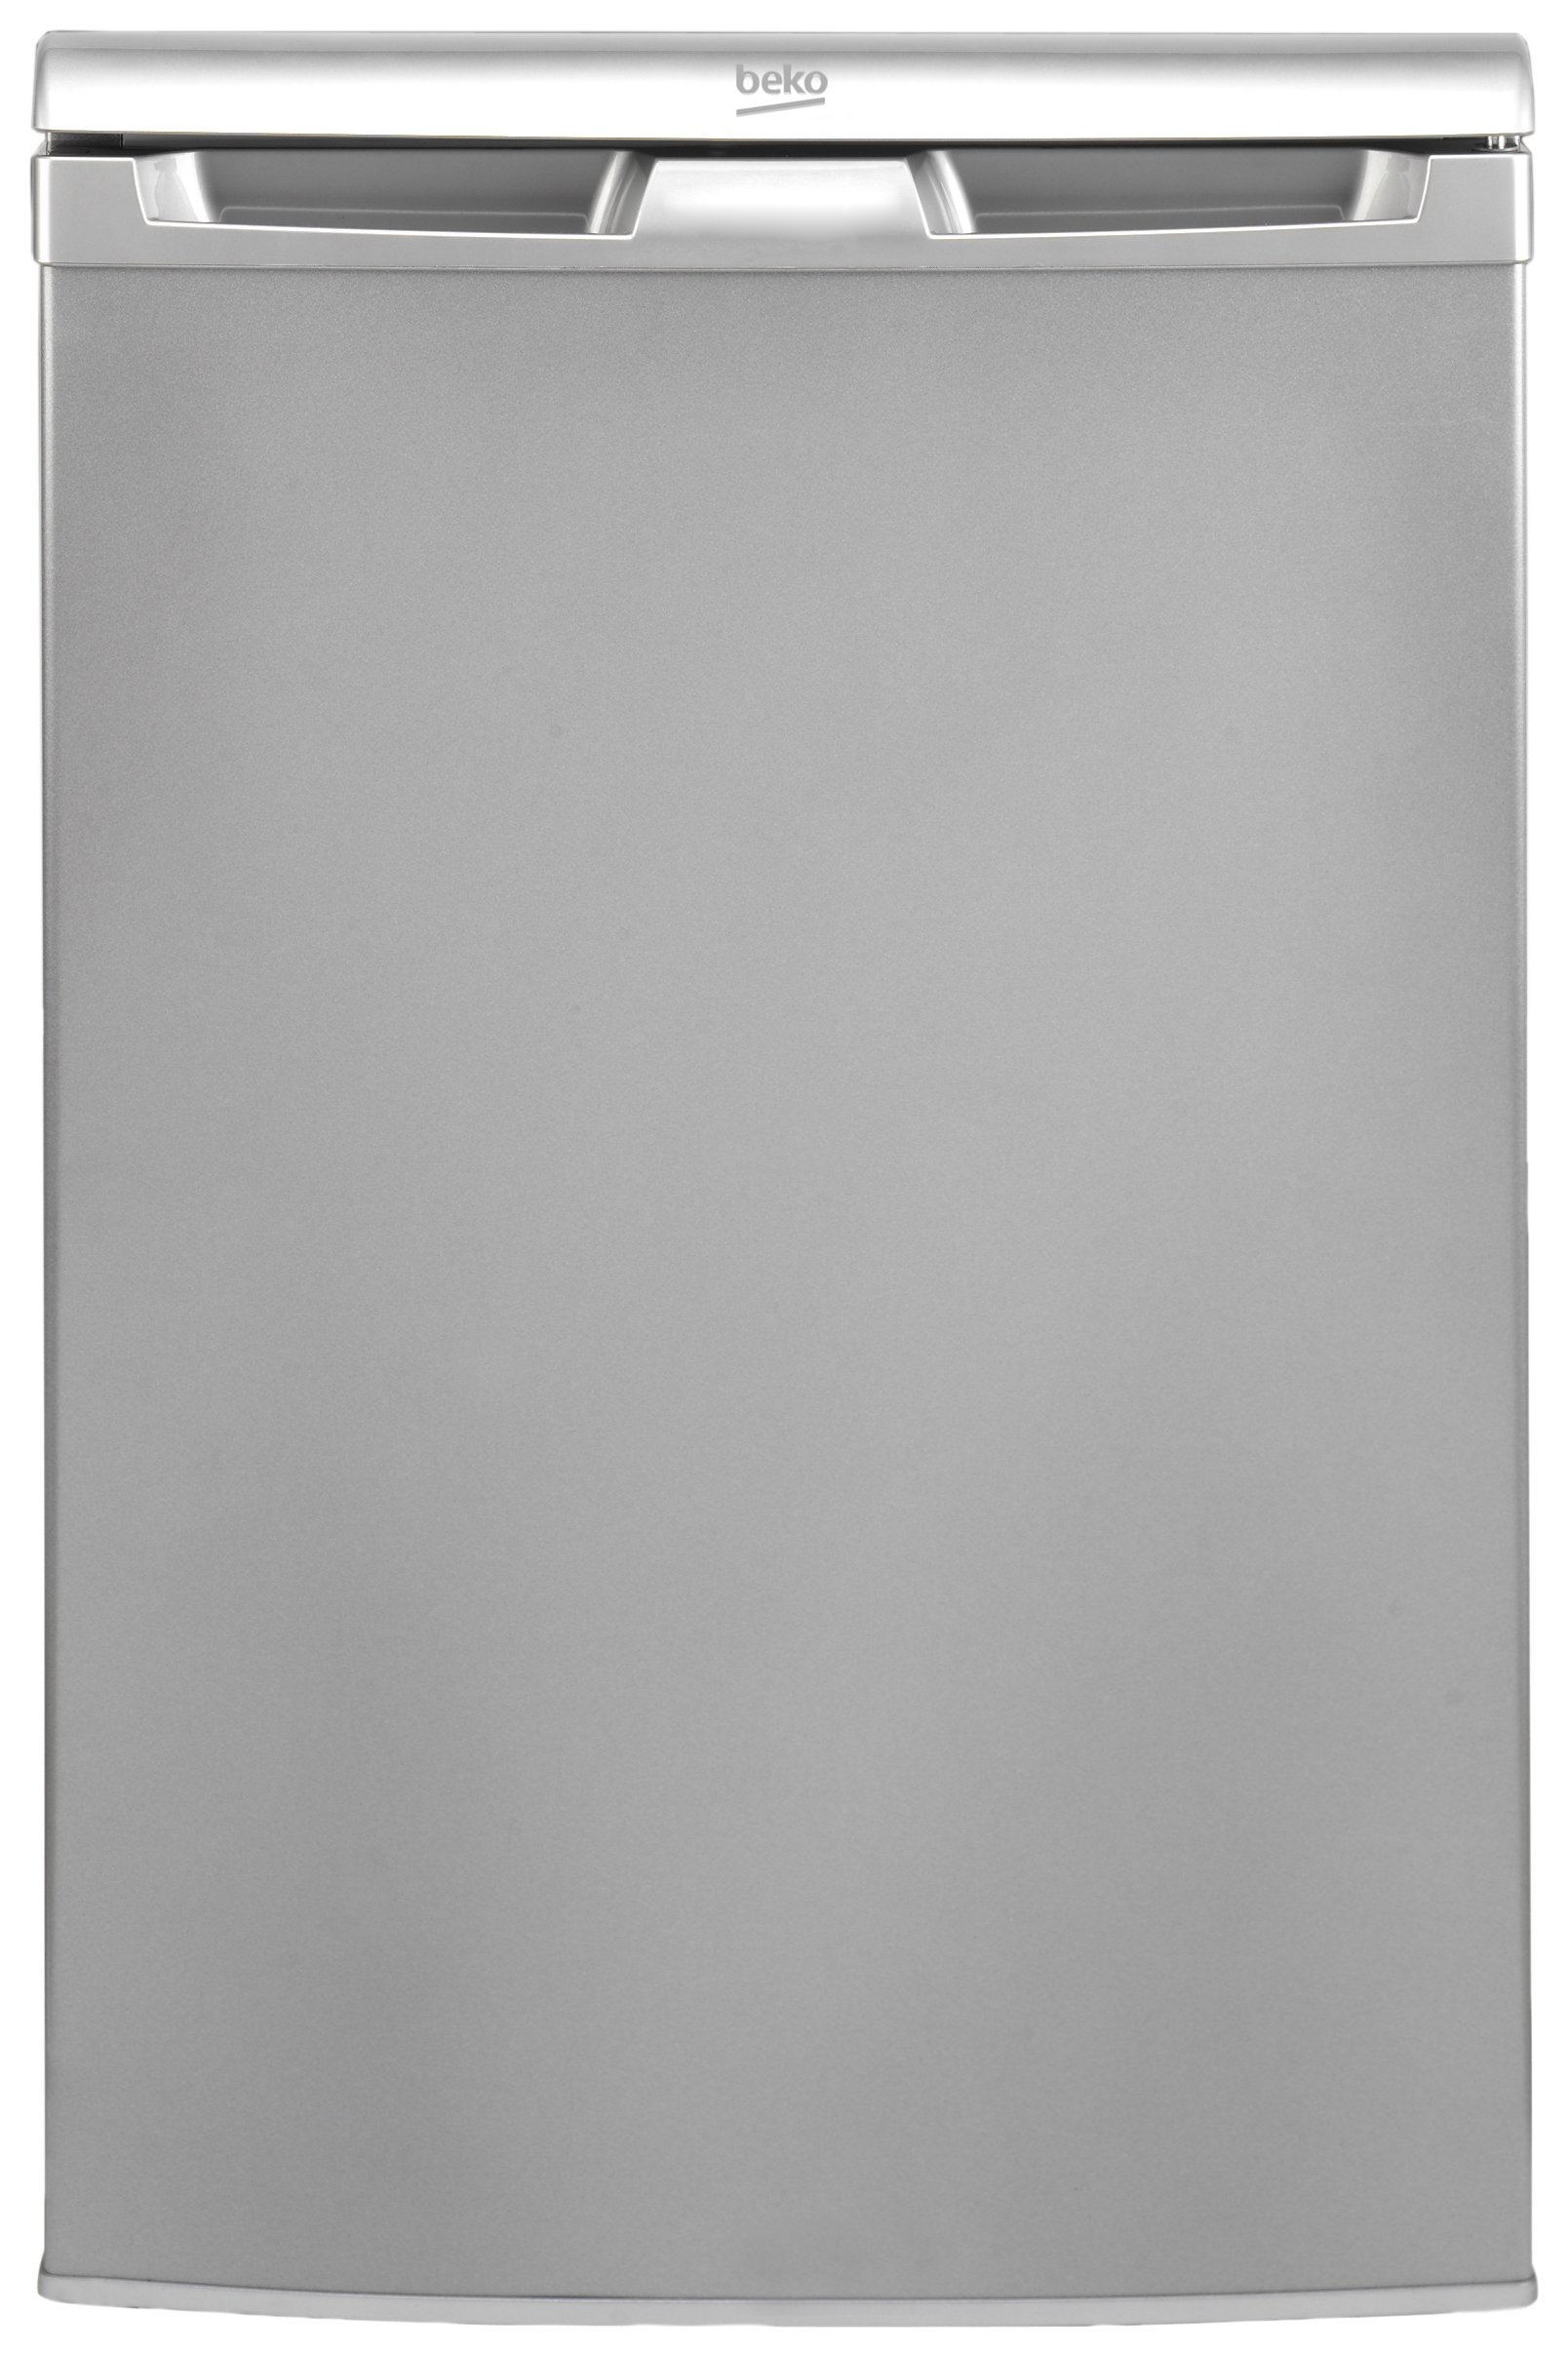 Beko UR584APS Under Counter Fridge - Silver from Beko